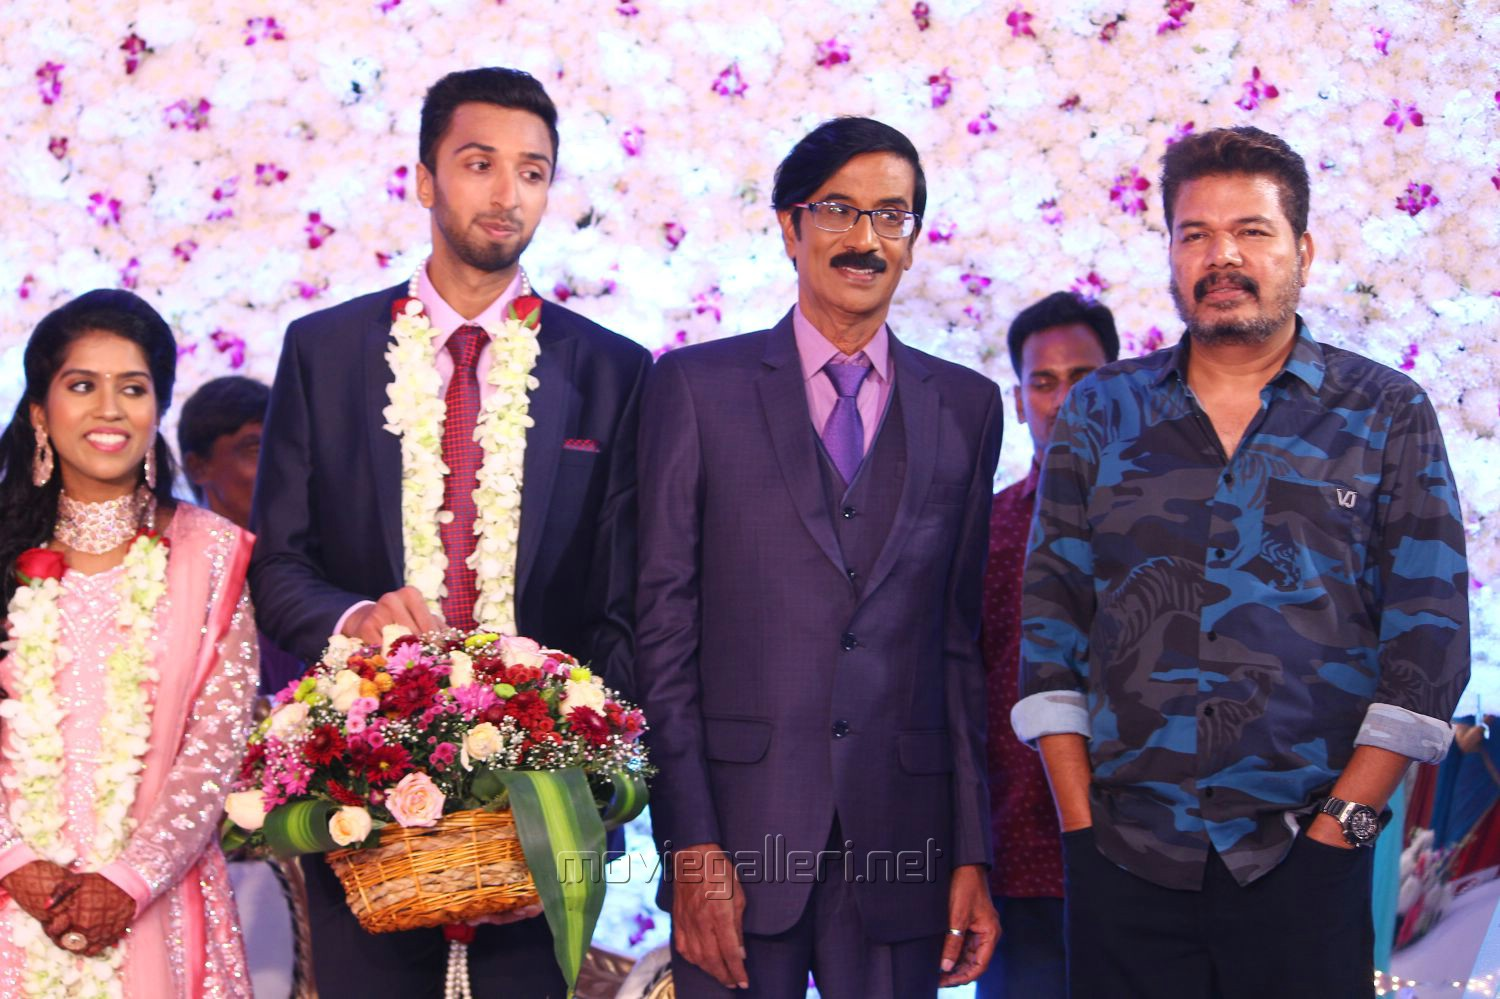 Director Shankar @ Manobala Son Harish Priya Wedding Reception Stills